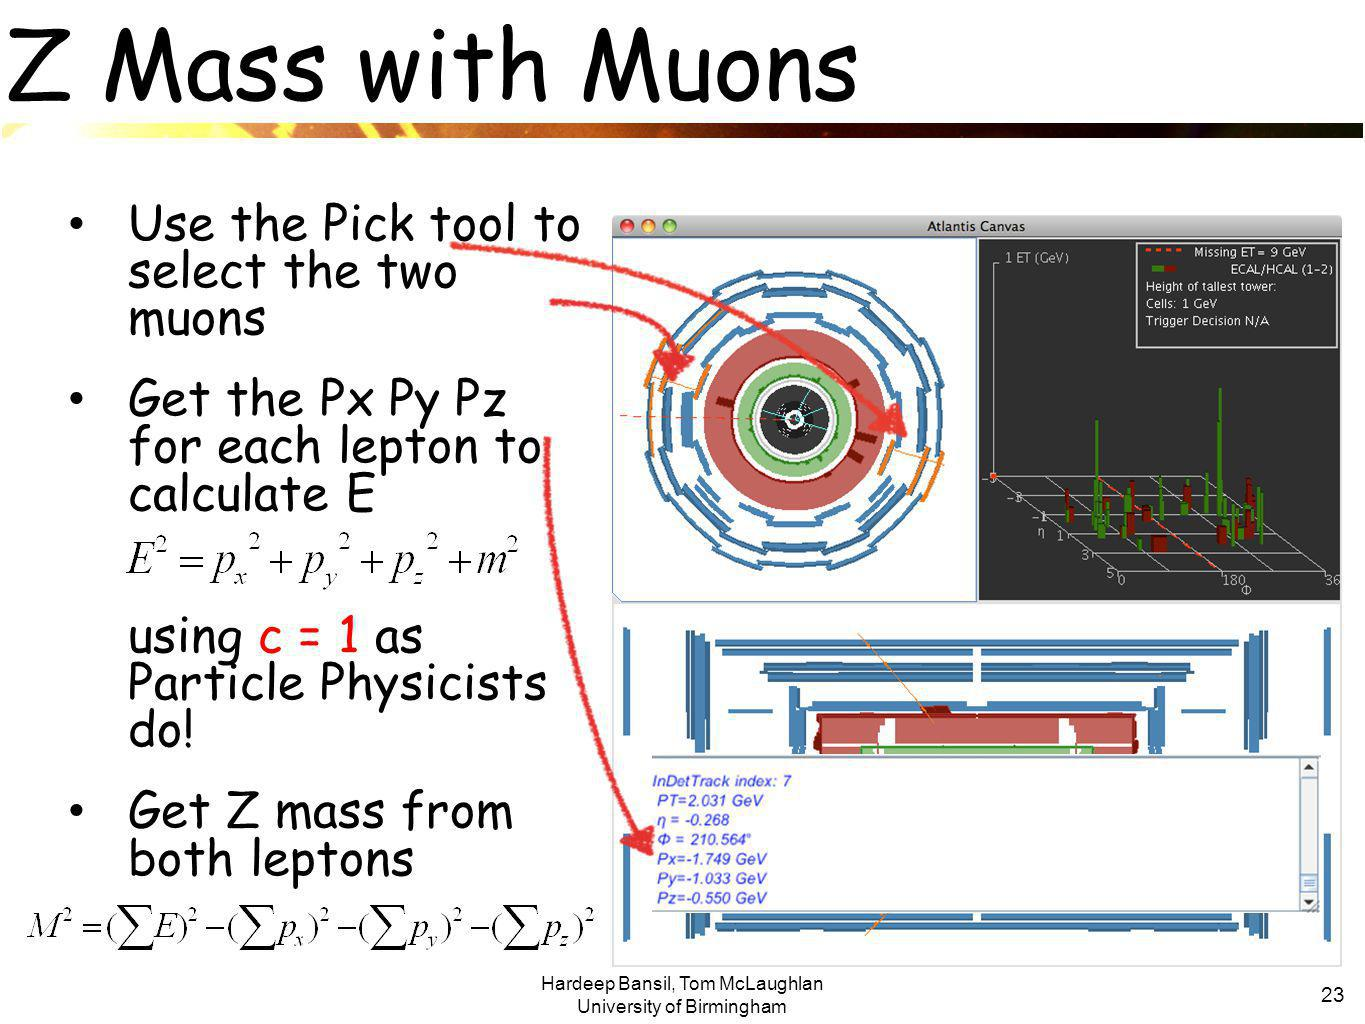 Hardeep Bansil, Tom McLaughlan University of Birmingham 23 Z Mass with Muons Use the Pick tool to select the two muons Get the Px Py Pz for each lepton to calculate E using c = 1 as Particle Physicists do.